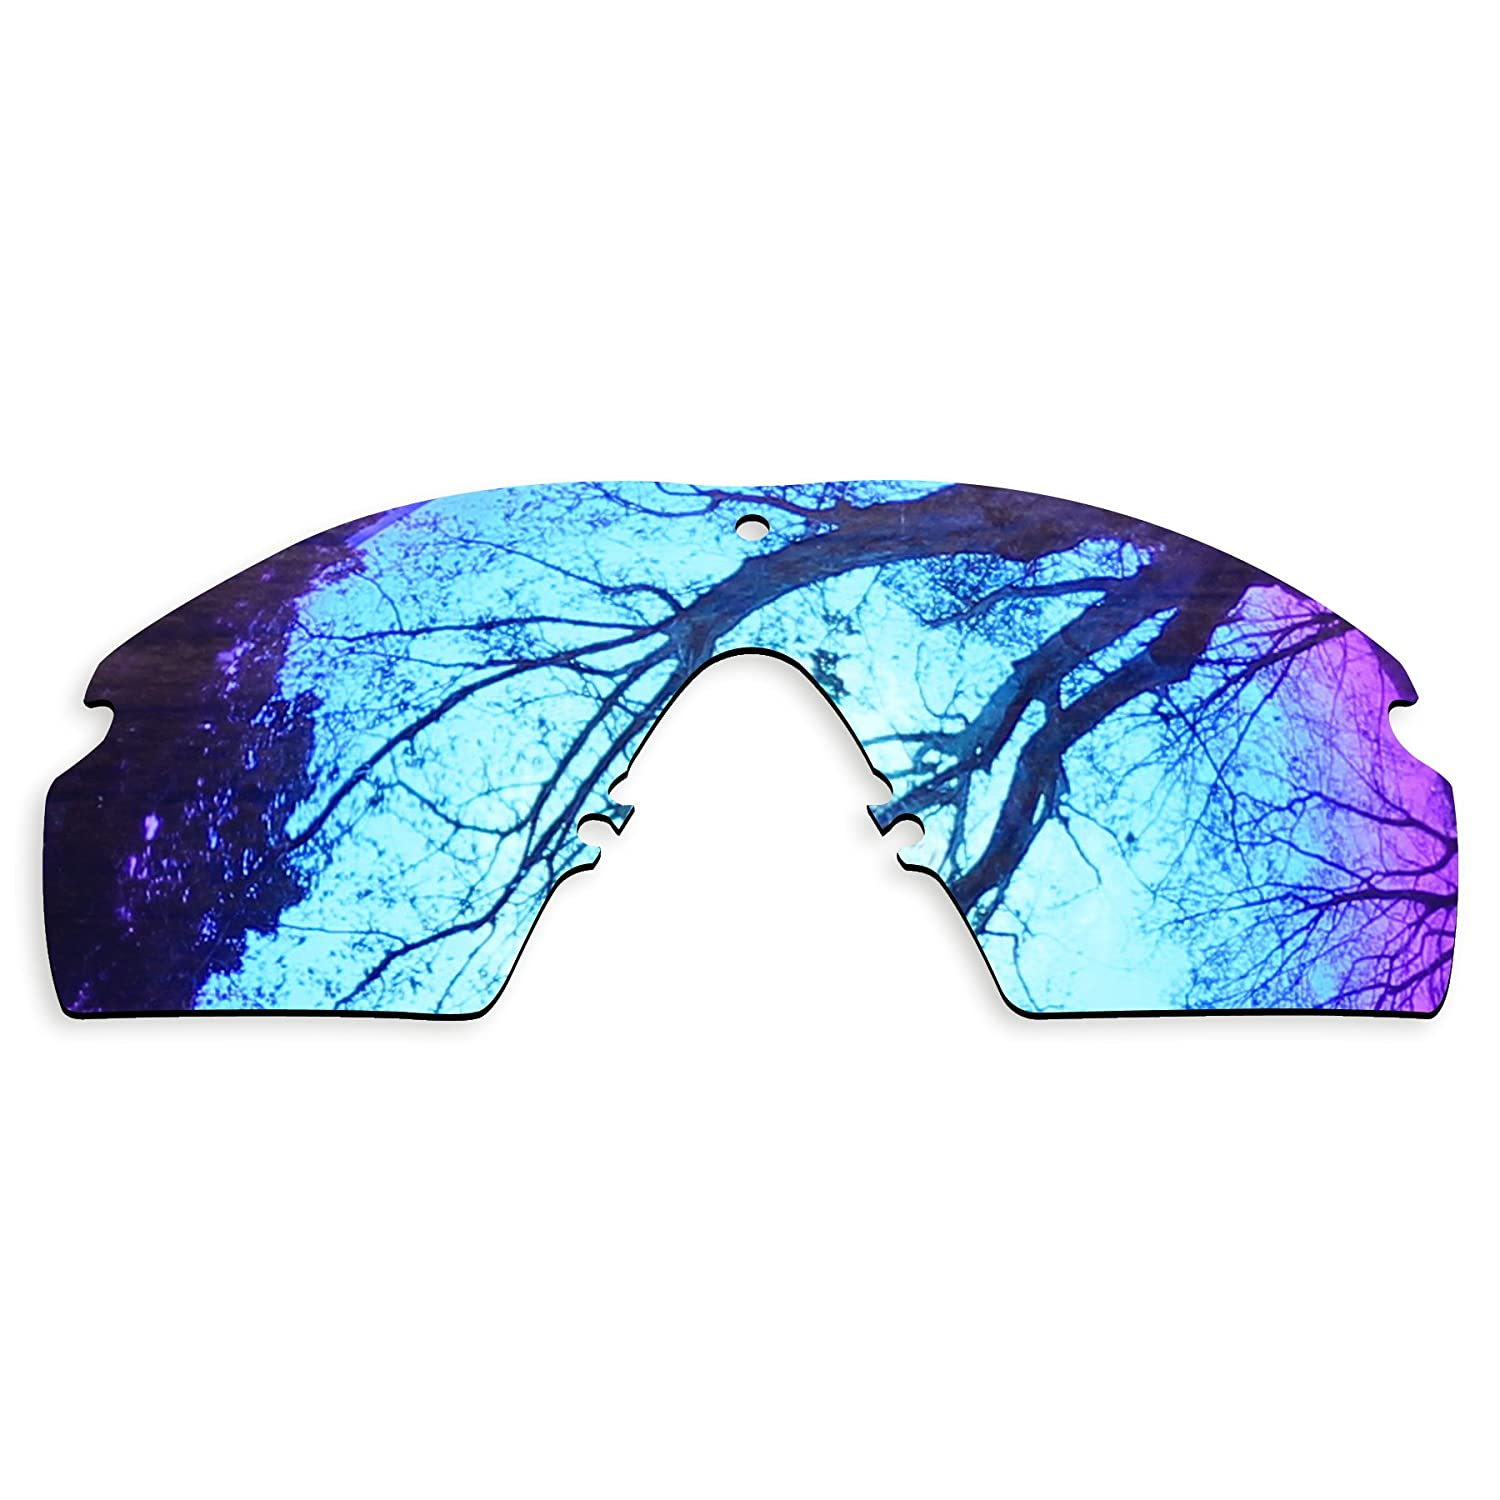 6b46a975703 ToughAsNails Polarized Lens Replacement for Oakley SI Ballistic M Frame 3.0  Sunglass - Violet Blue  Amazon.ca  Clothing   Accessories